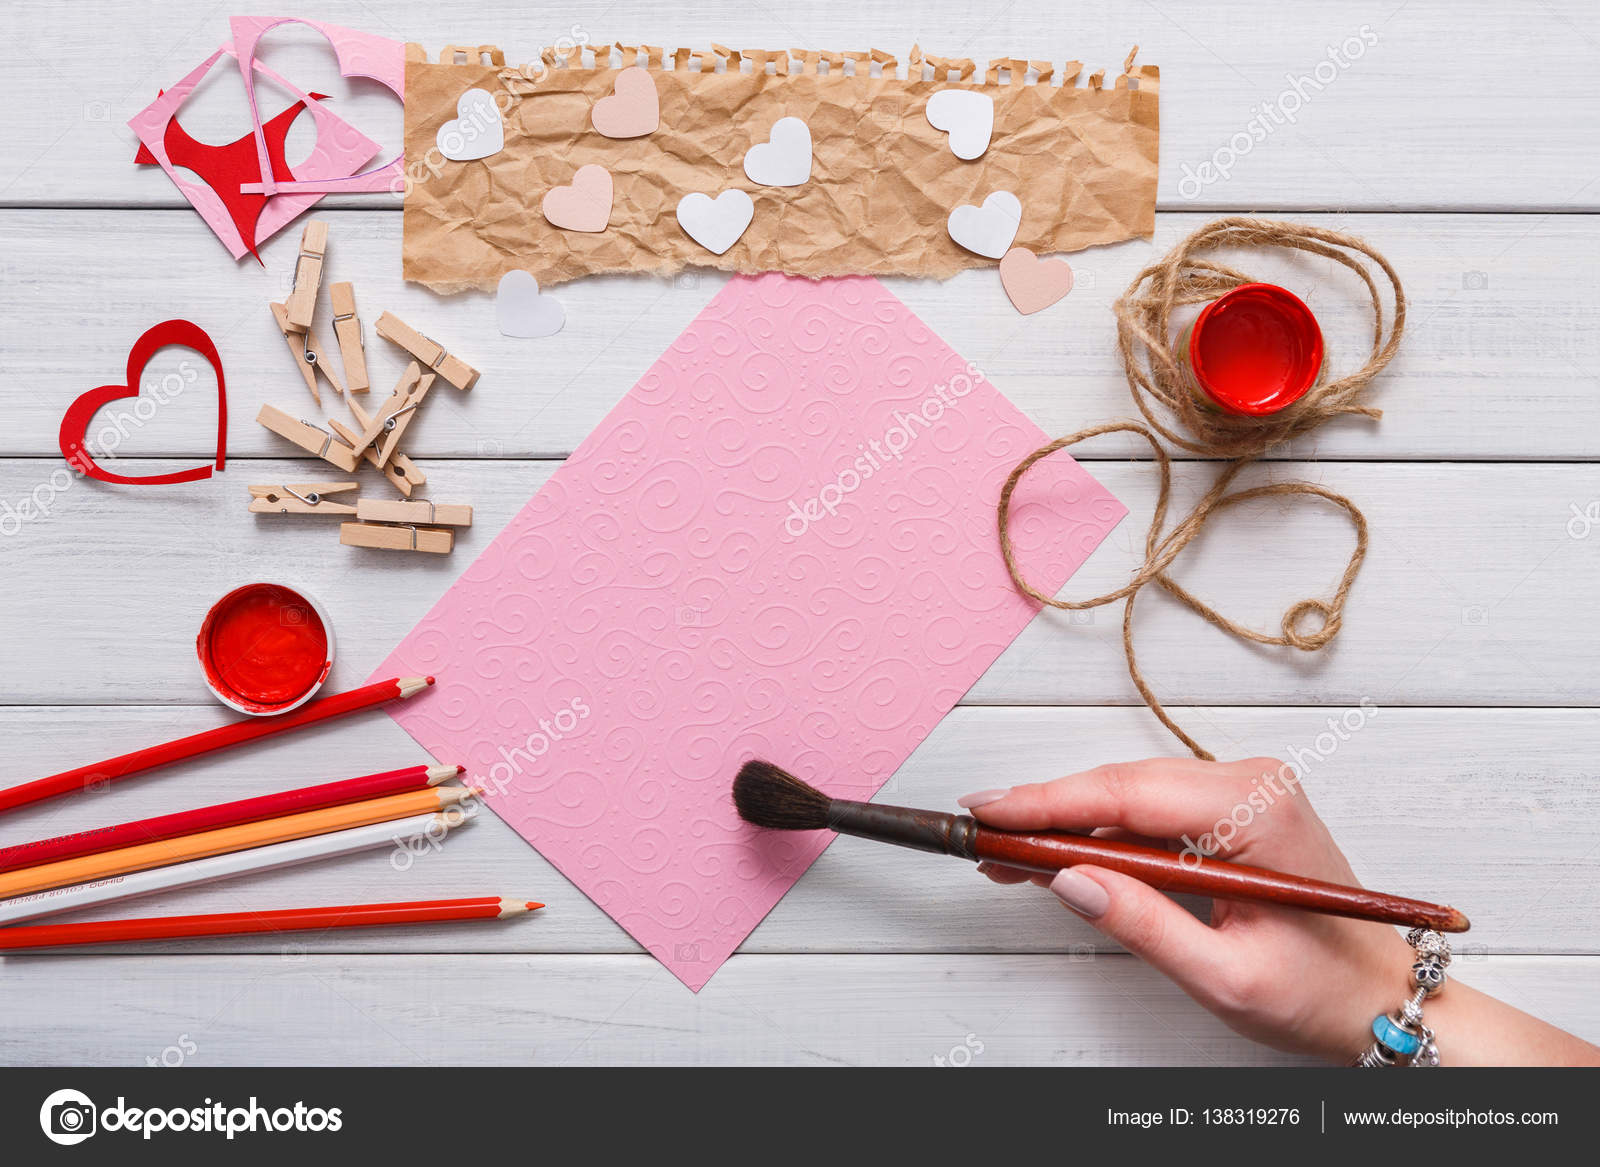 Valentine Day Diy Handmade Card Making Top View On Wood Stock